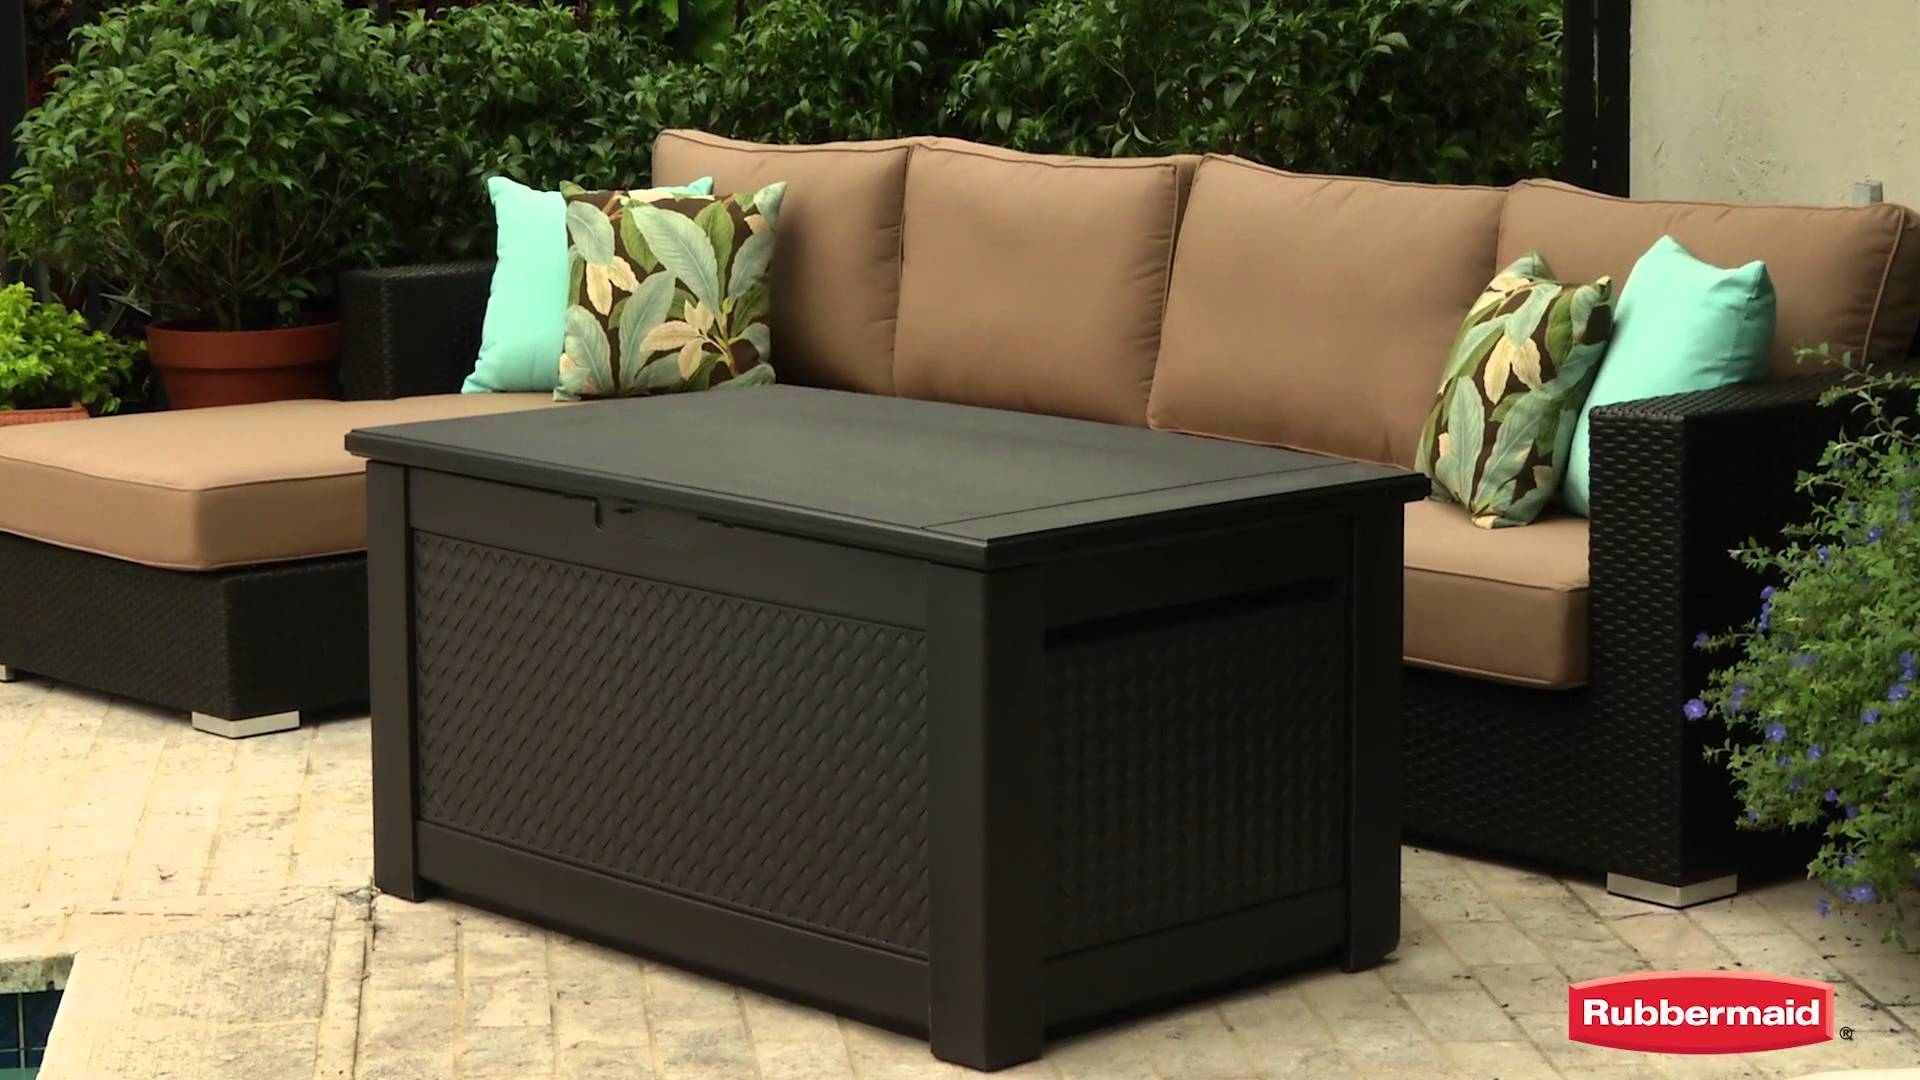 Rubbermaid Bench Storage | Suncast Resin Wicker Deck Box | Rubbermaid Storage Bench